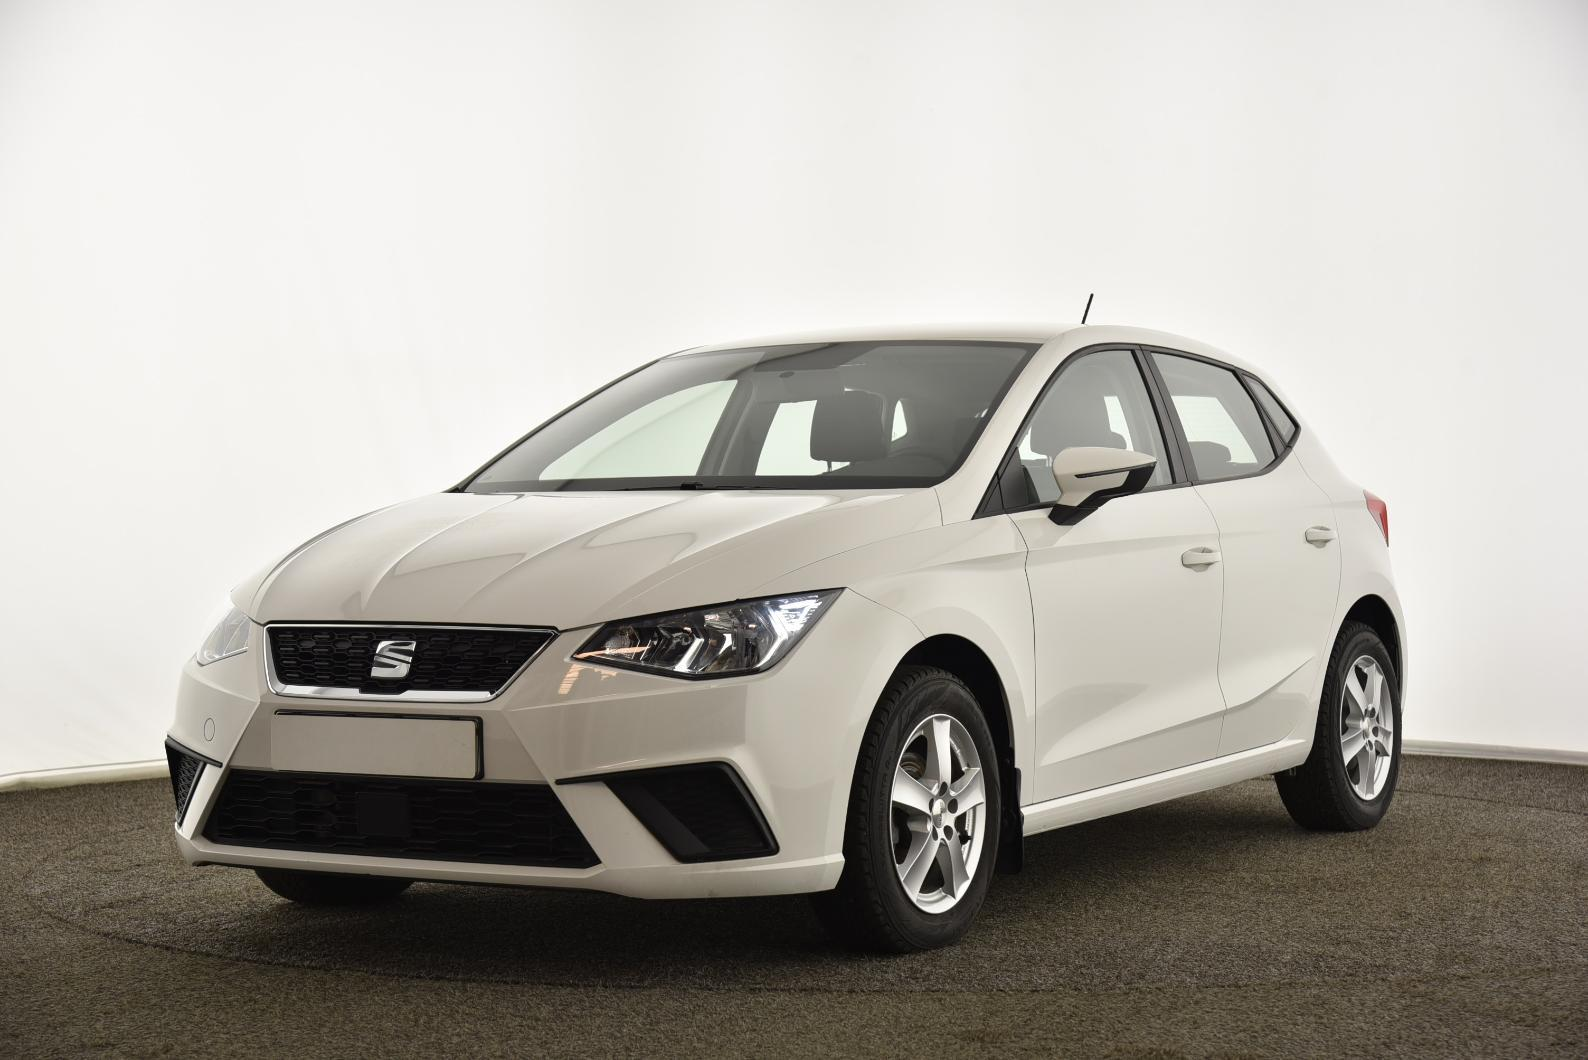 SEAT IBIZA 1.0 EcoTSI 95 ch S/S BVM5 Style